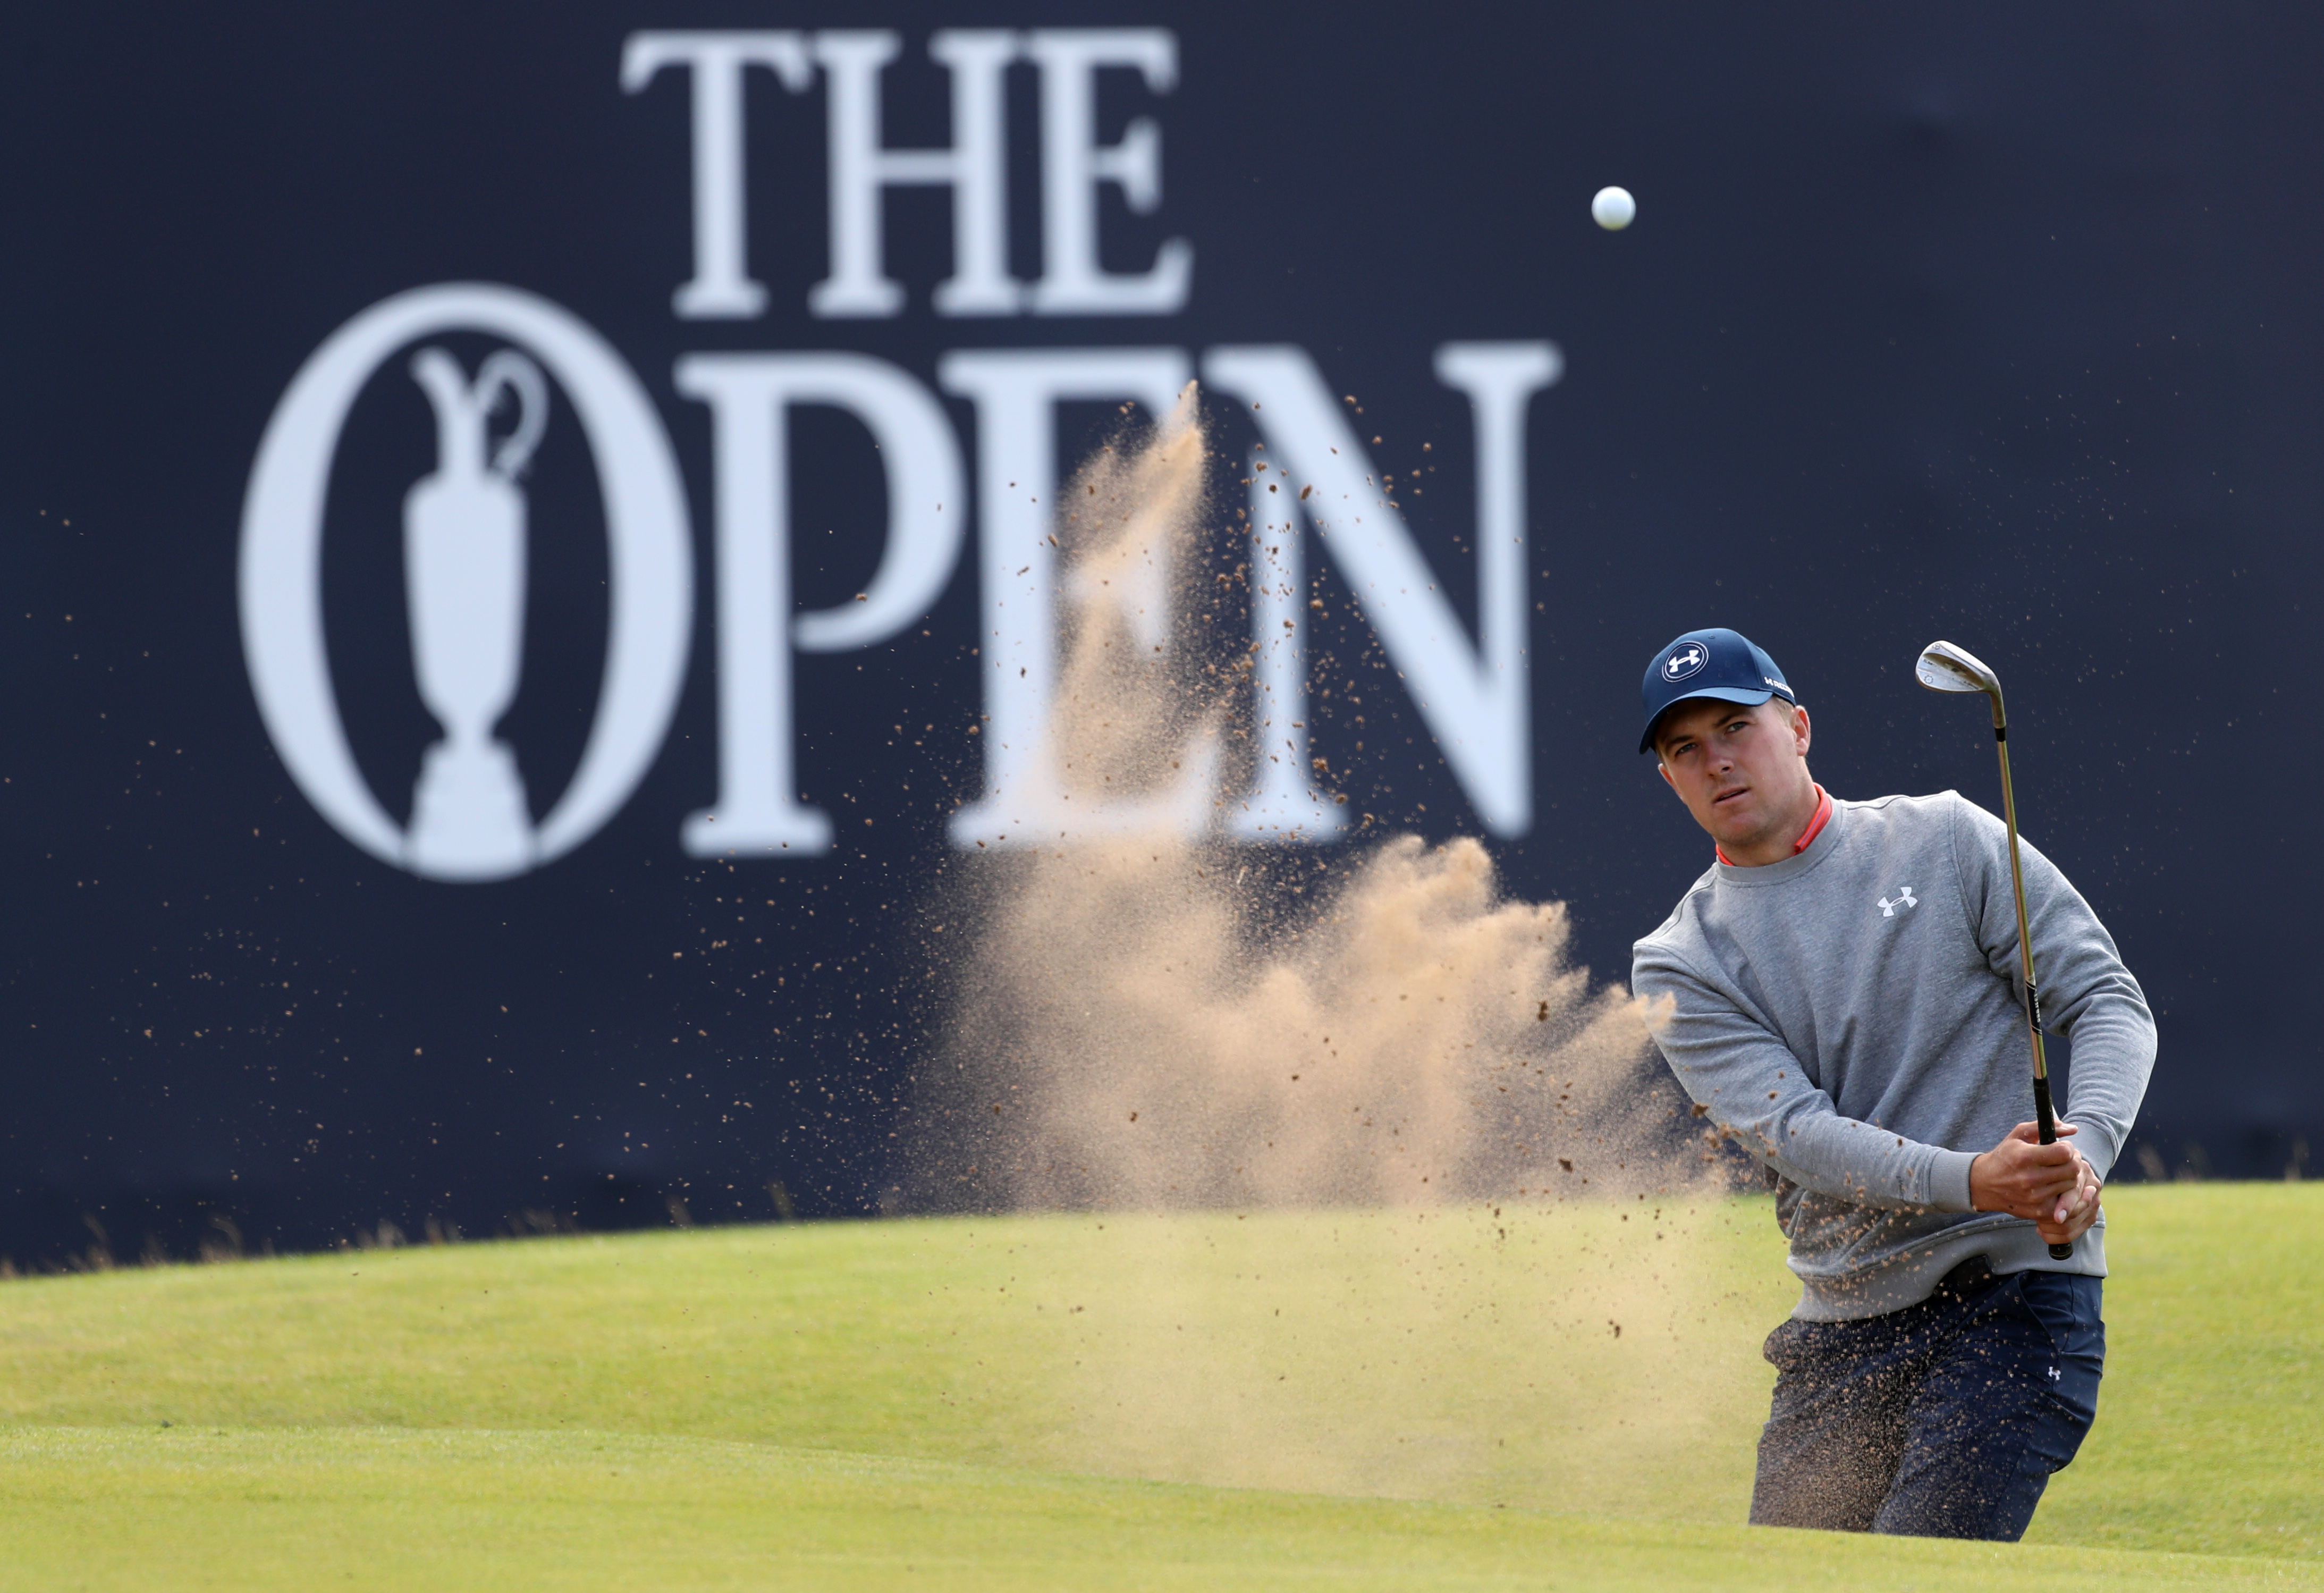 Jordan Spieth of the United States plays out of a sand trap on the 18th green during a practice round ahead of the British Open Golf Championship at the Royal Troon Golf Club in Troon, Scotland, Wednesday, July 13, 2016. The British Open starts Thursday.(